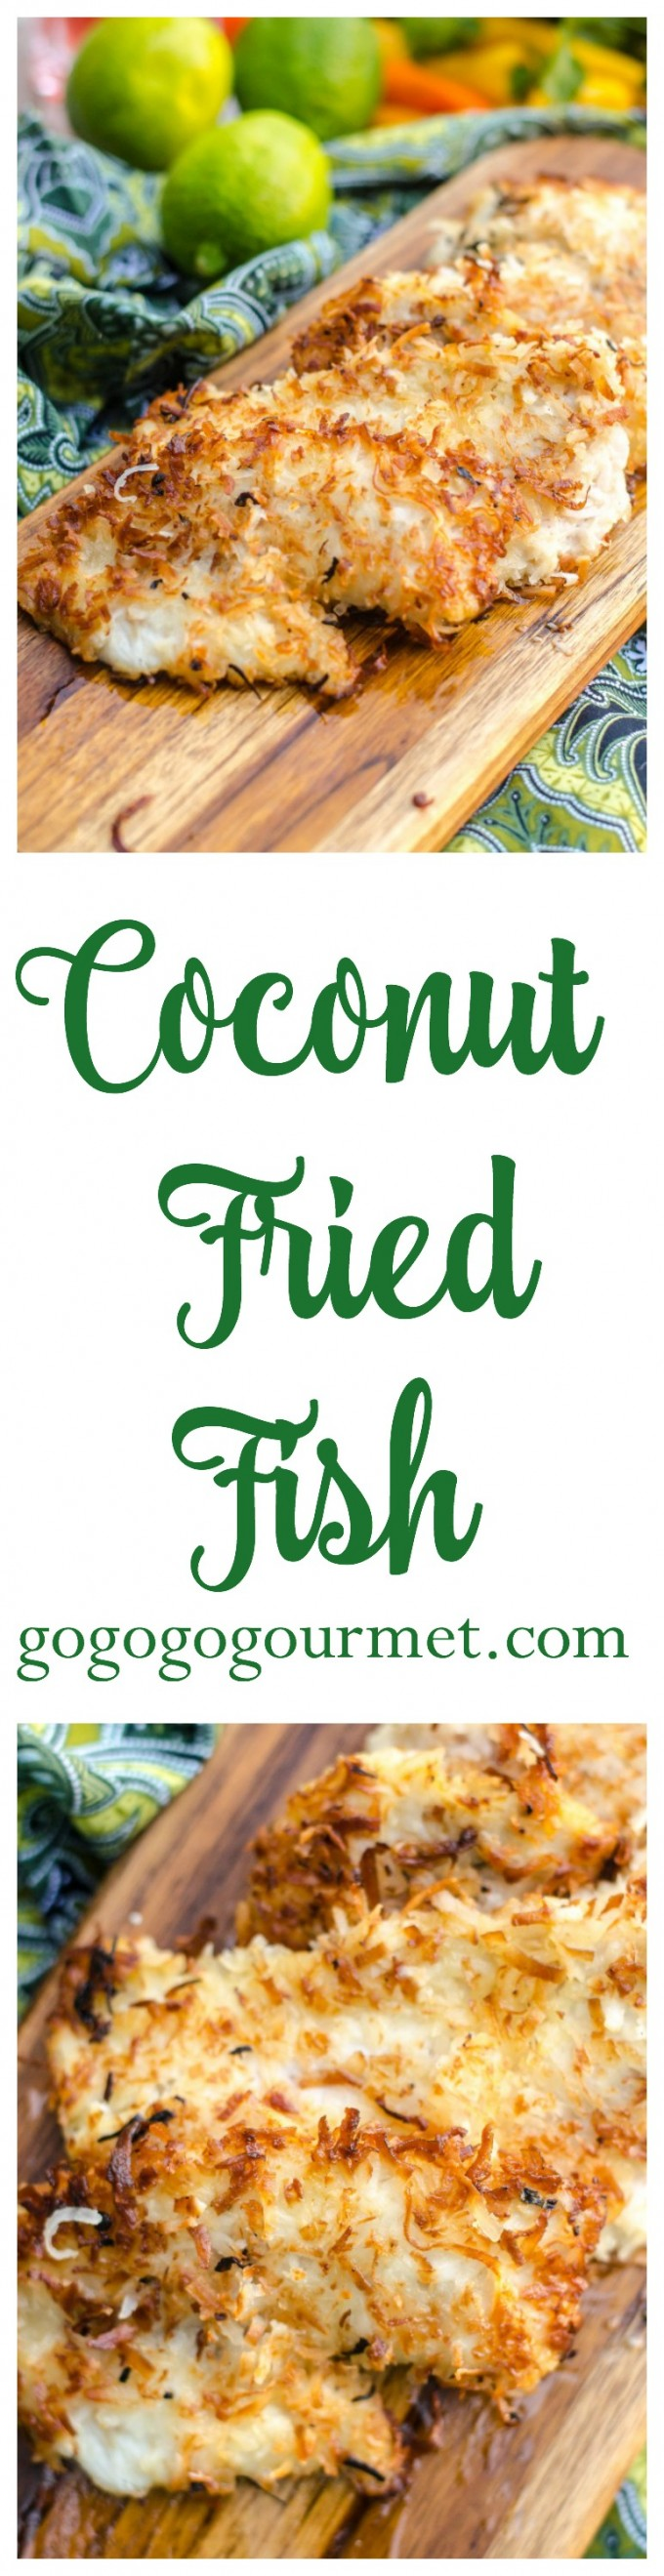 This Coconut Crusted Fried Fish is a surefire way to add a little island flair to your day! Only a handful of pantry-ready ingredients and ready in under 30 minutes. Coconut Fried Fish | Go Go Go Gourmet @Go Go Go Gourmet